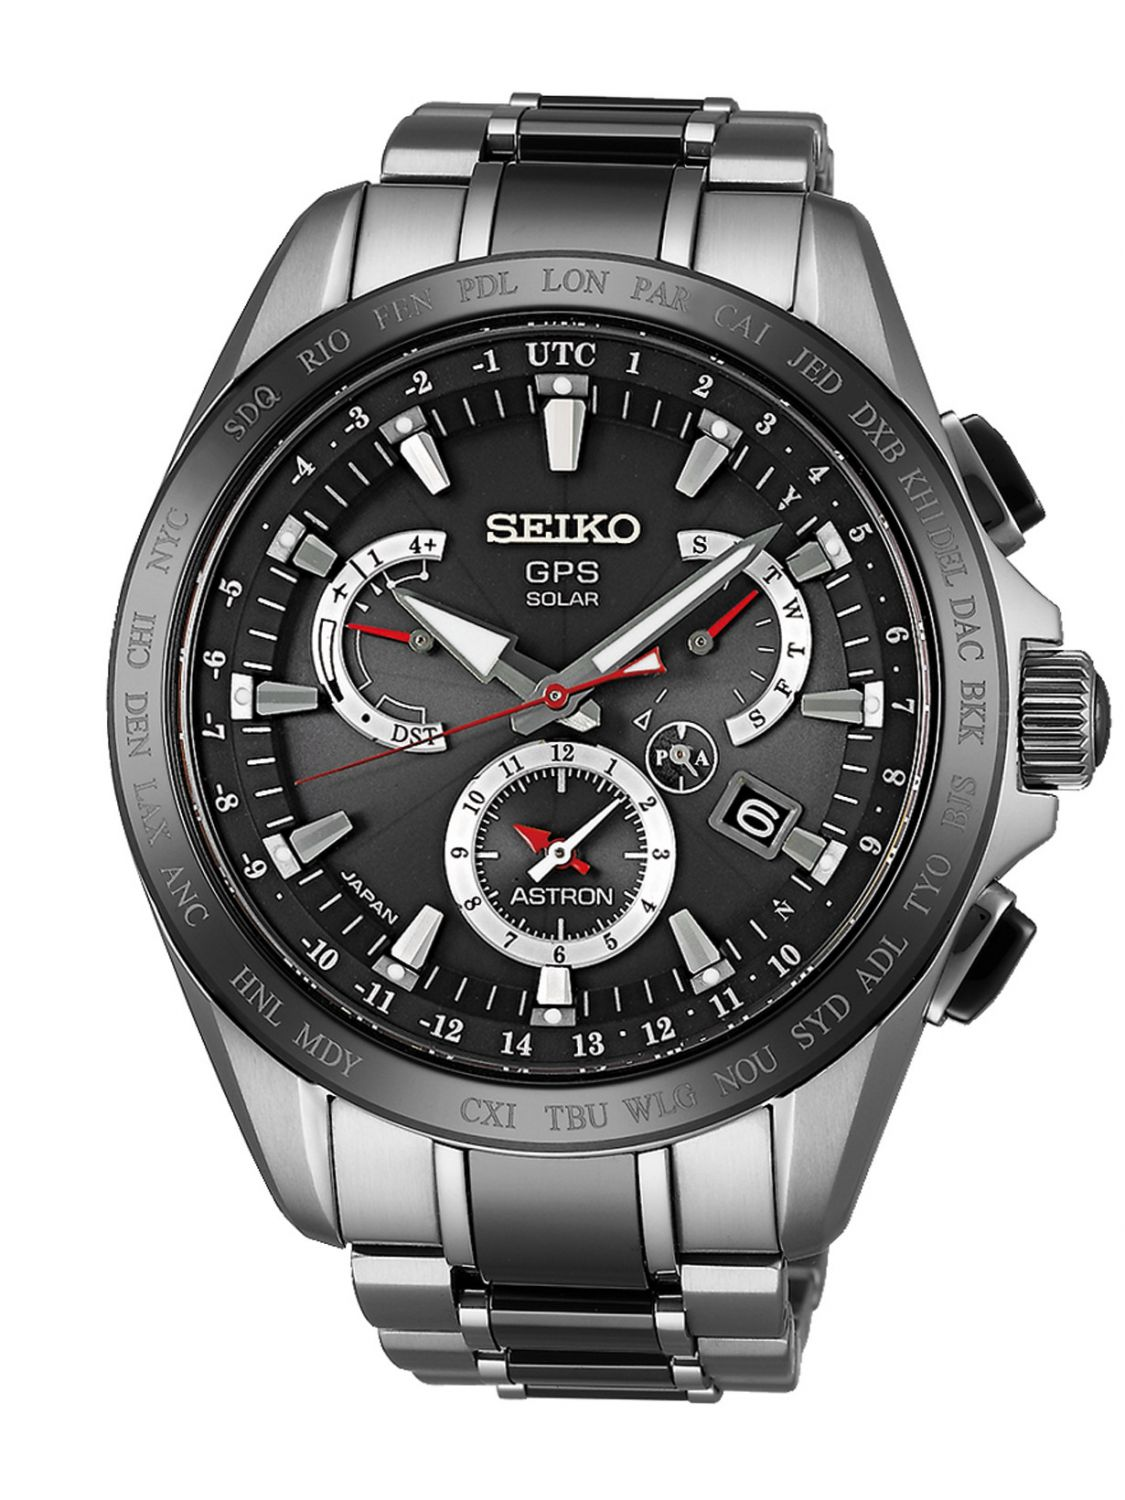 Seiko SSE041J1 Astron GPS Solar Dual Time Mens Watch Image 1 ... 31b0df22160a